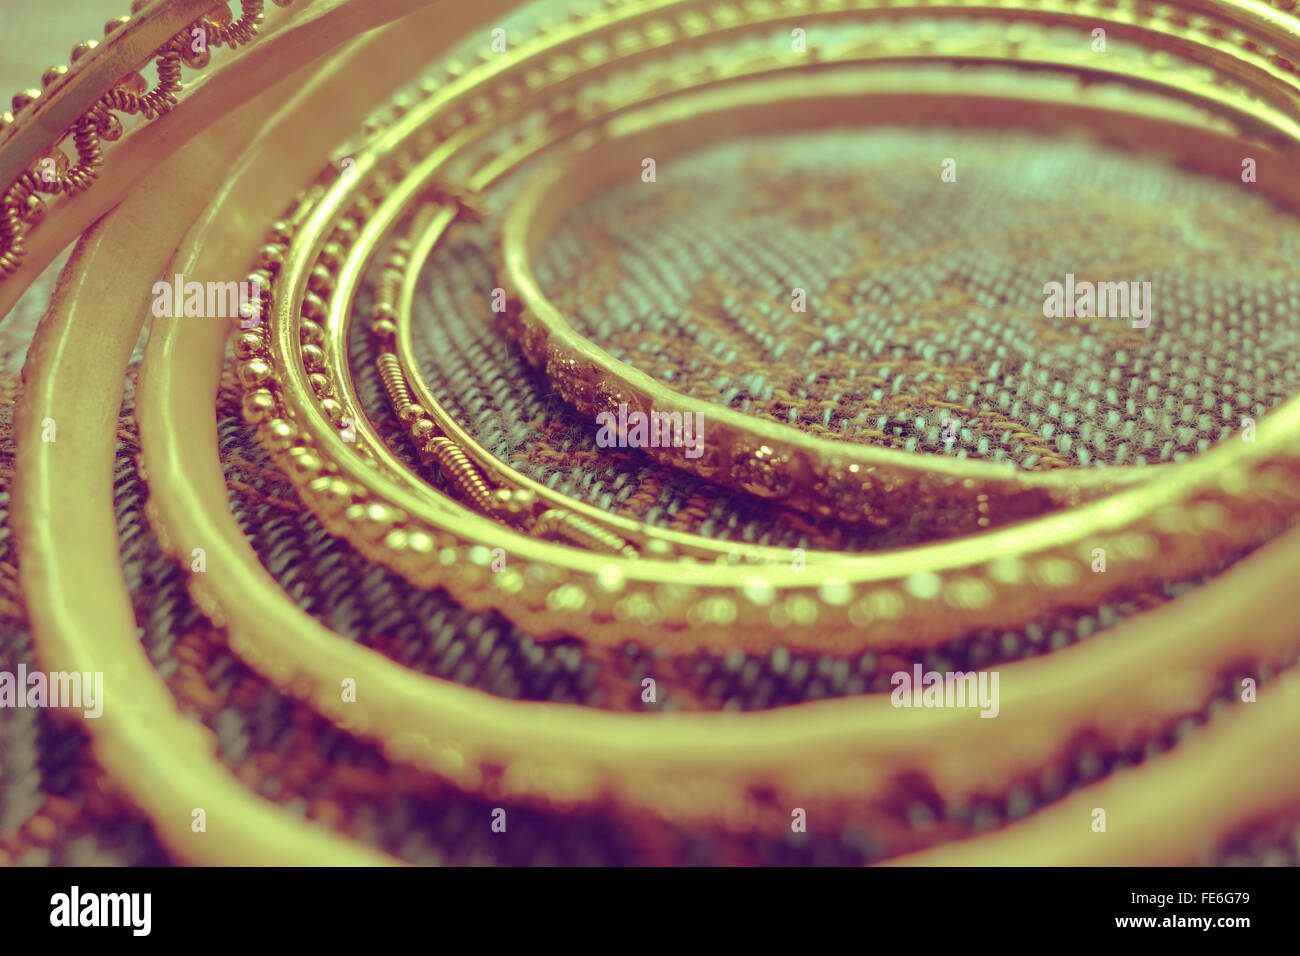 Extreme Close-Up Of Gold Colored Bangles - Stock Image